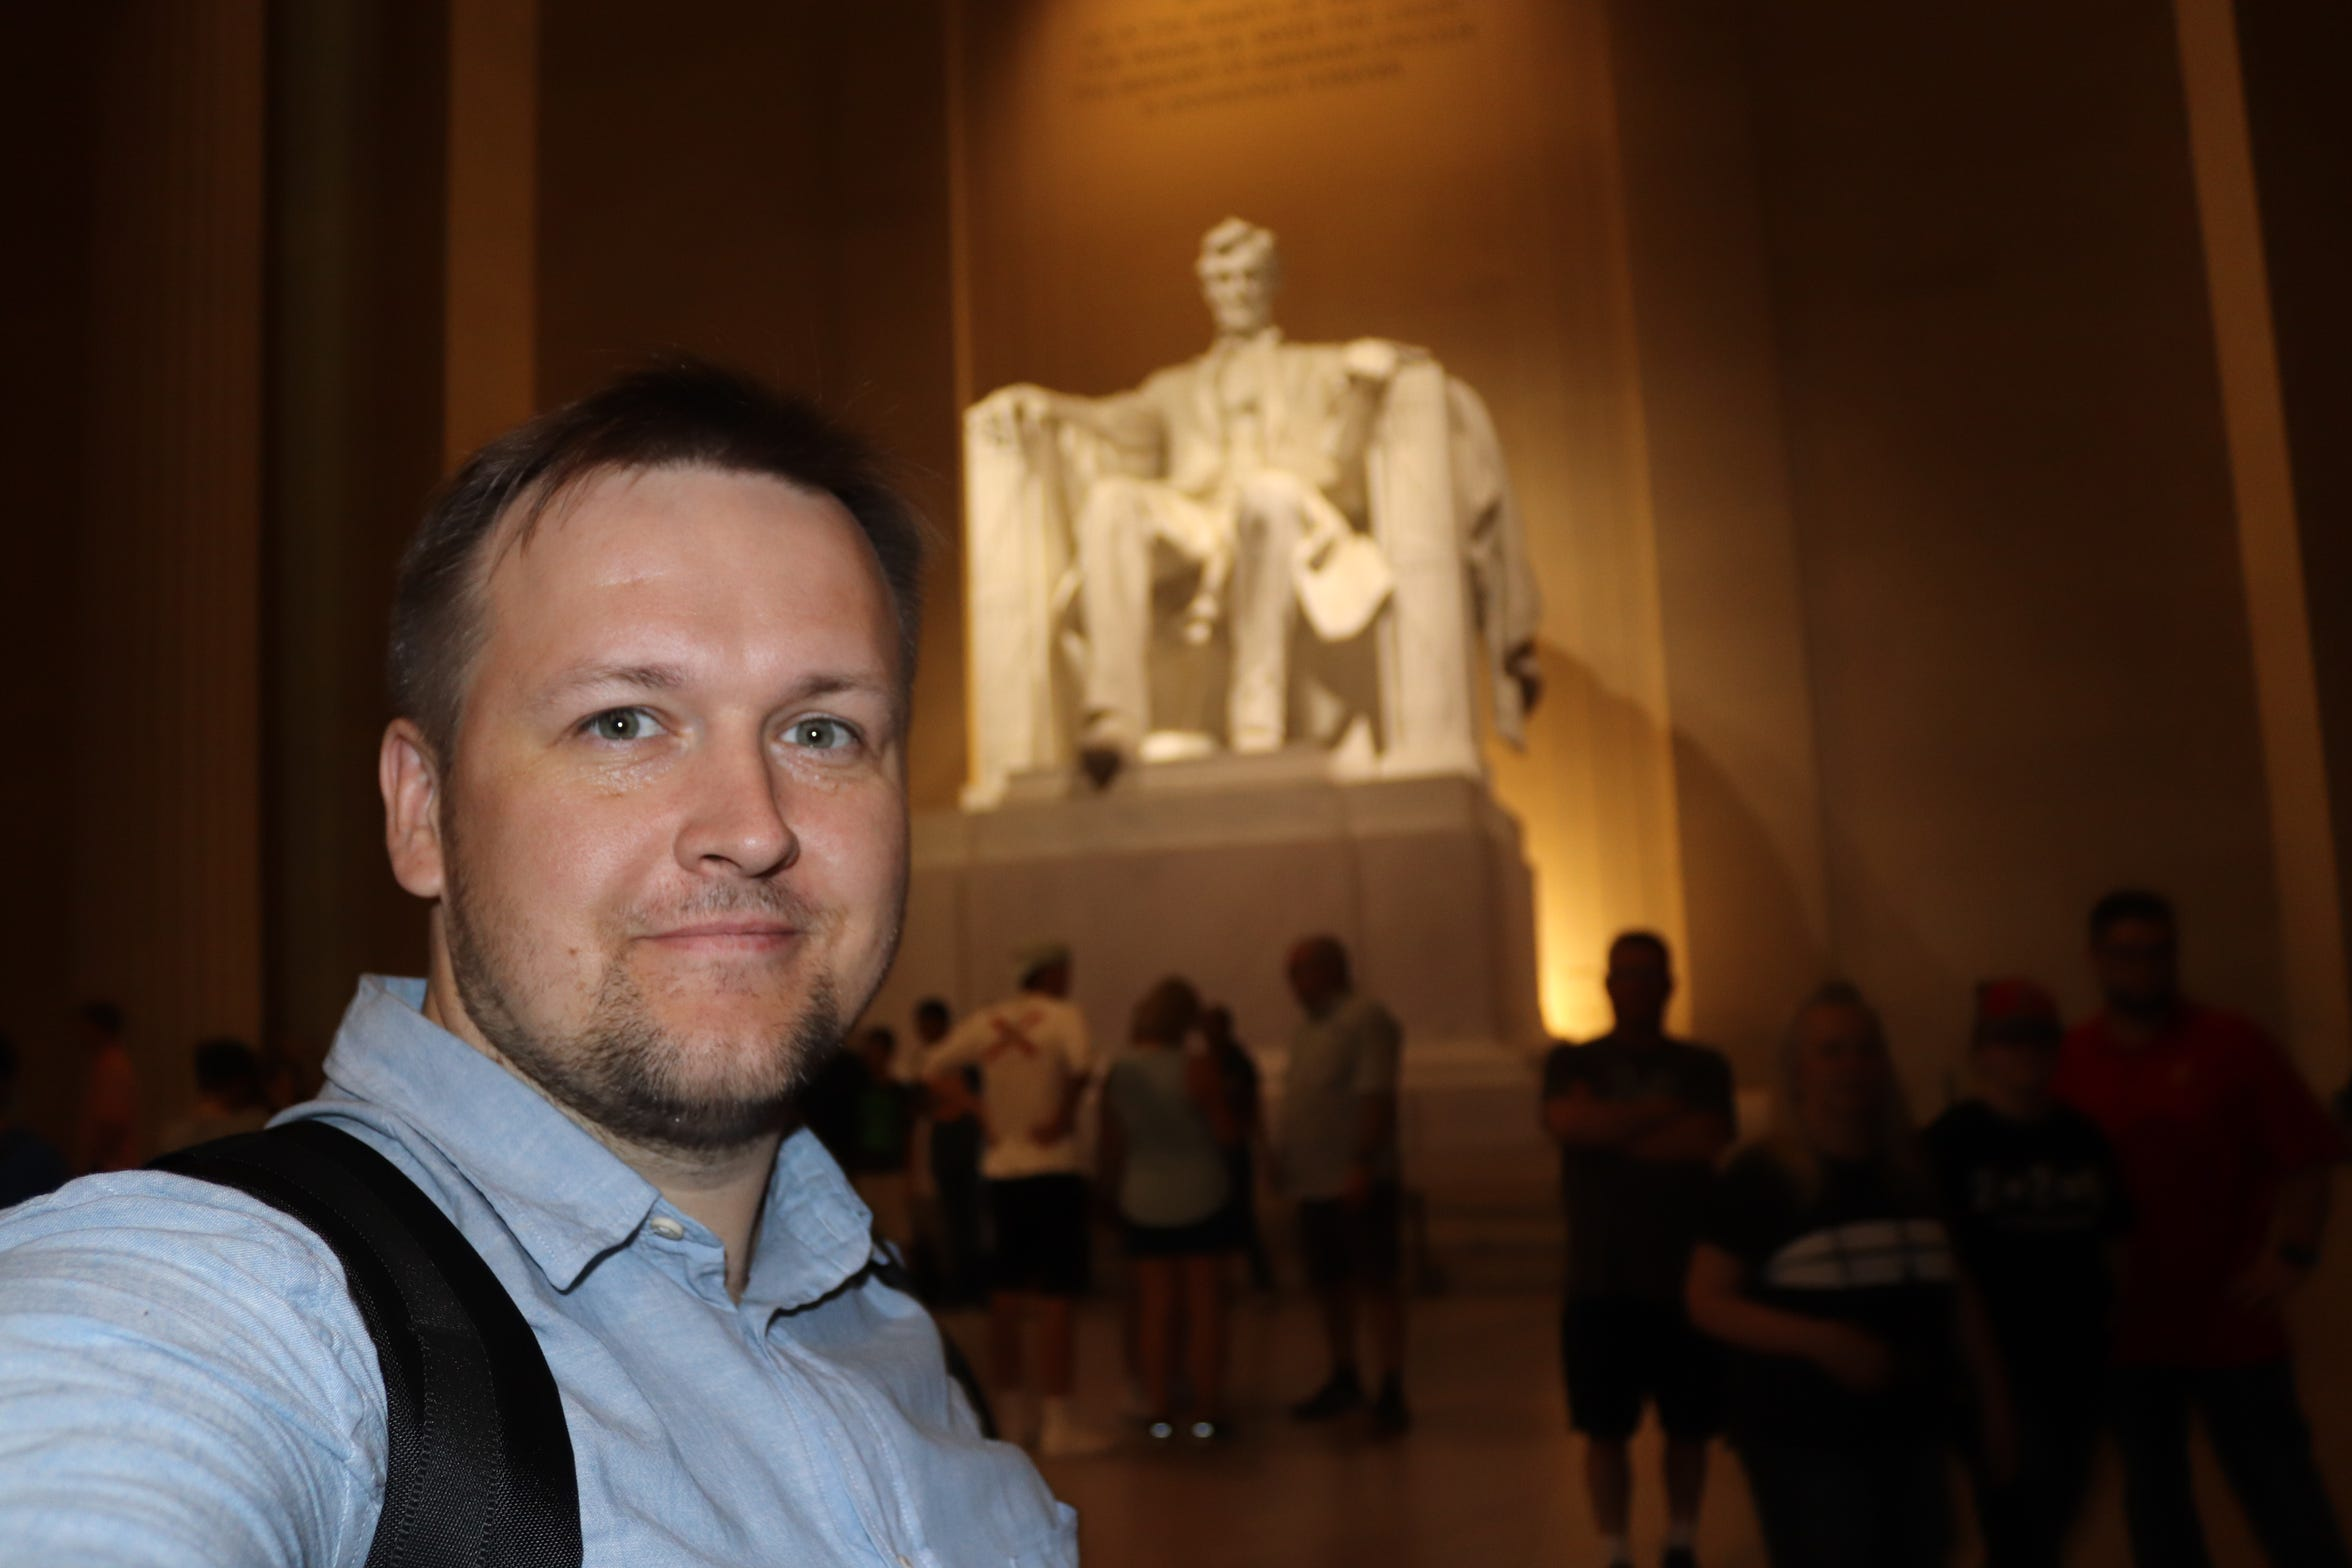 Visiting Russian journalist Pavel Alekseev at the Lincoln Memorial in Washington, D.C.